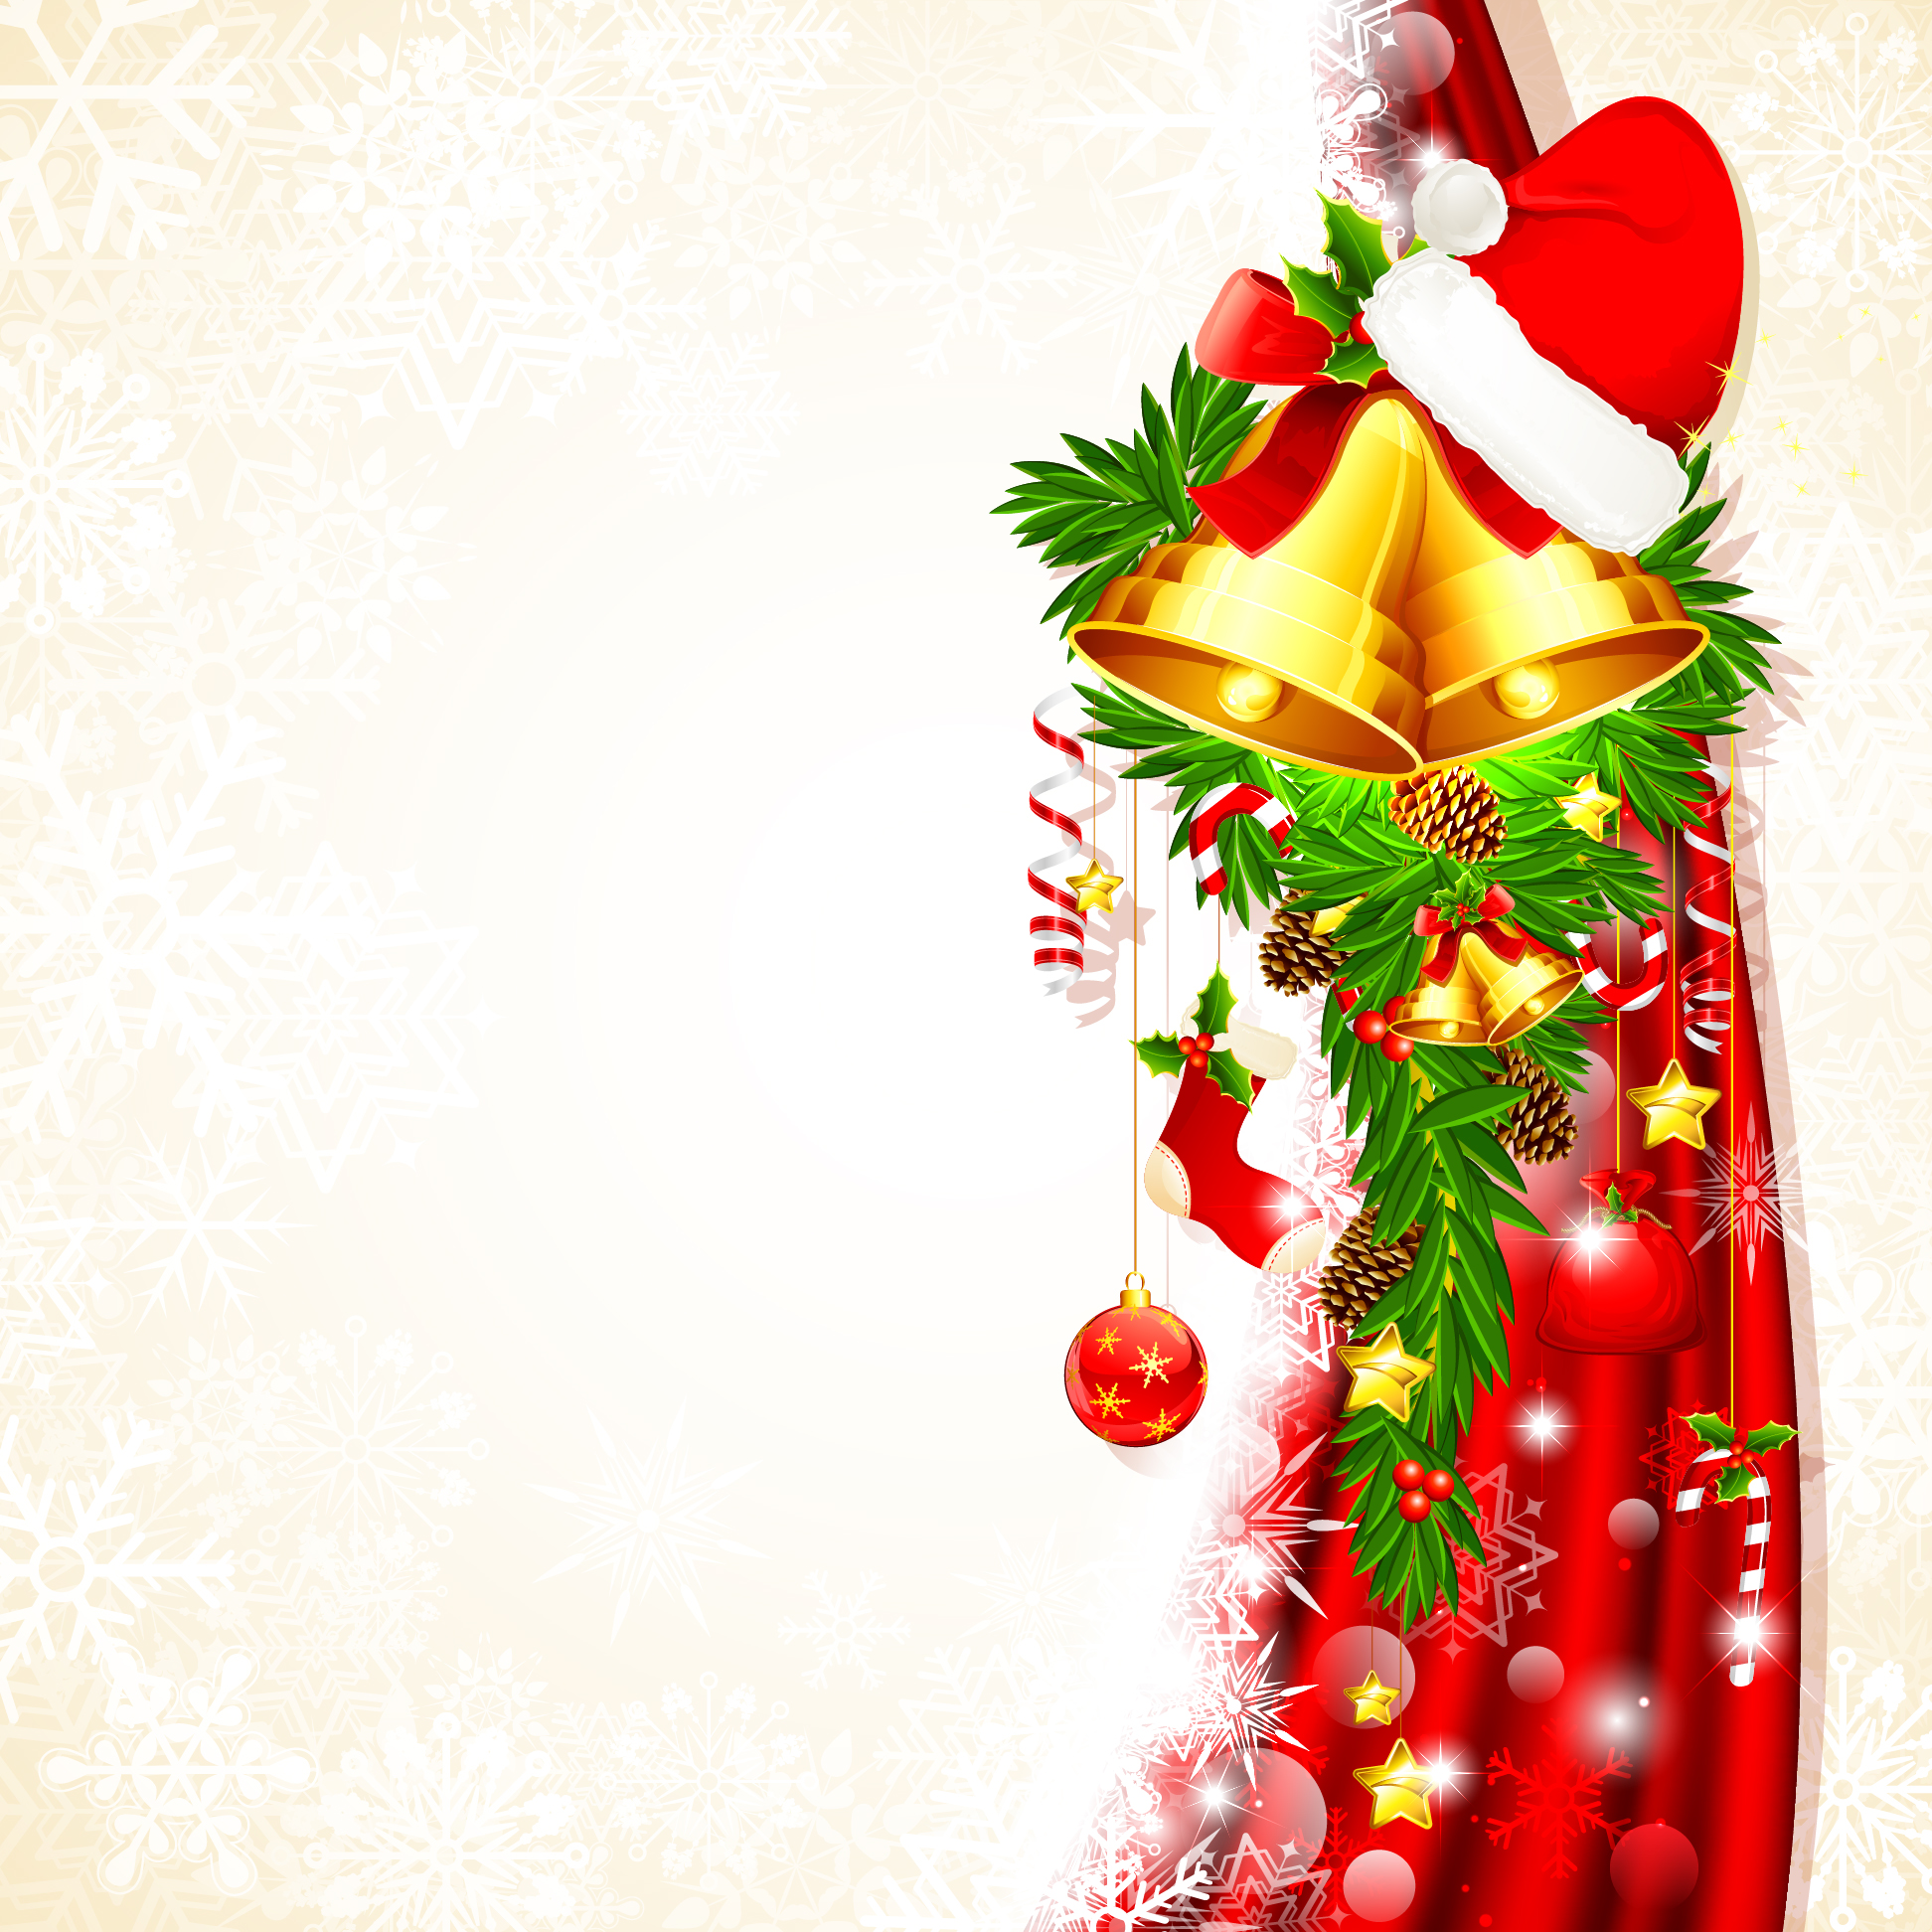 Christmas Background Clipart - Clipart Kid